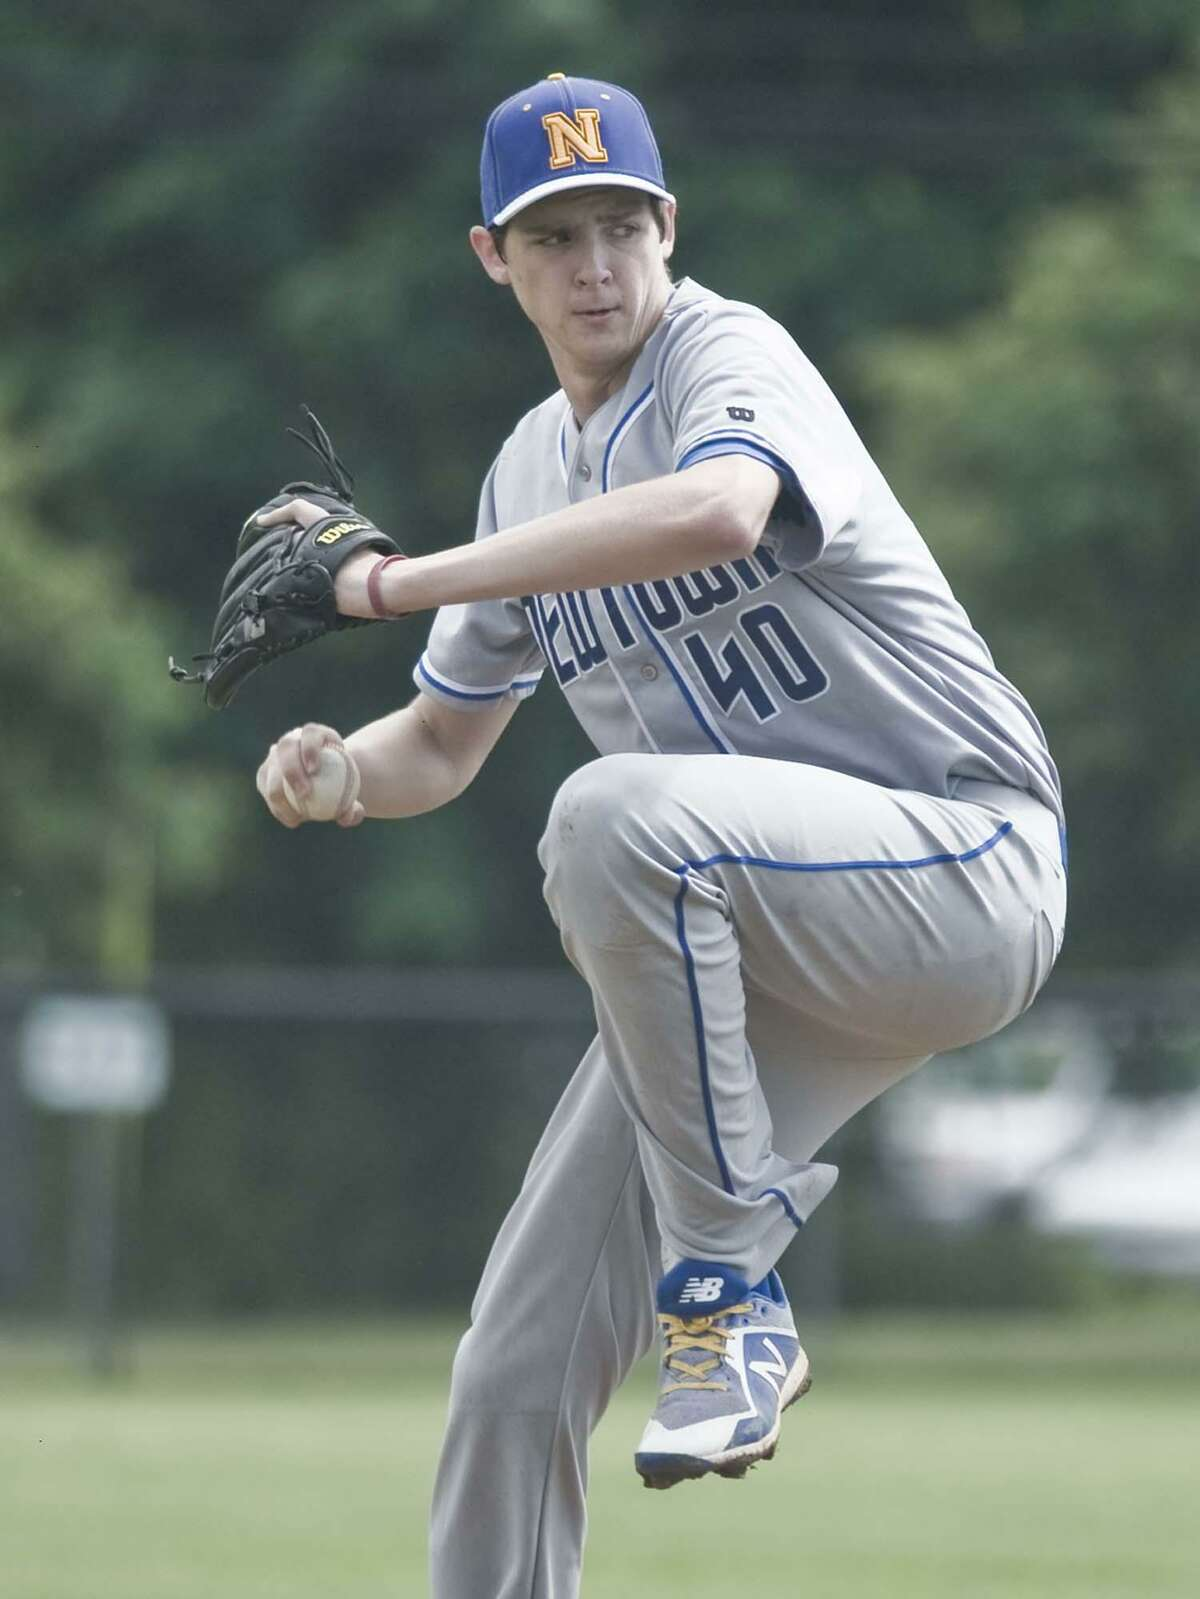 Newtown High School pitcher Kyle Roche delivers the ball in the Class LL quarterfinal baseball game against Ridgefield High School, played at Ridgefield. Saturday, June 2, 2018